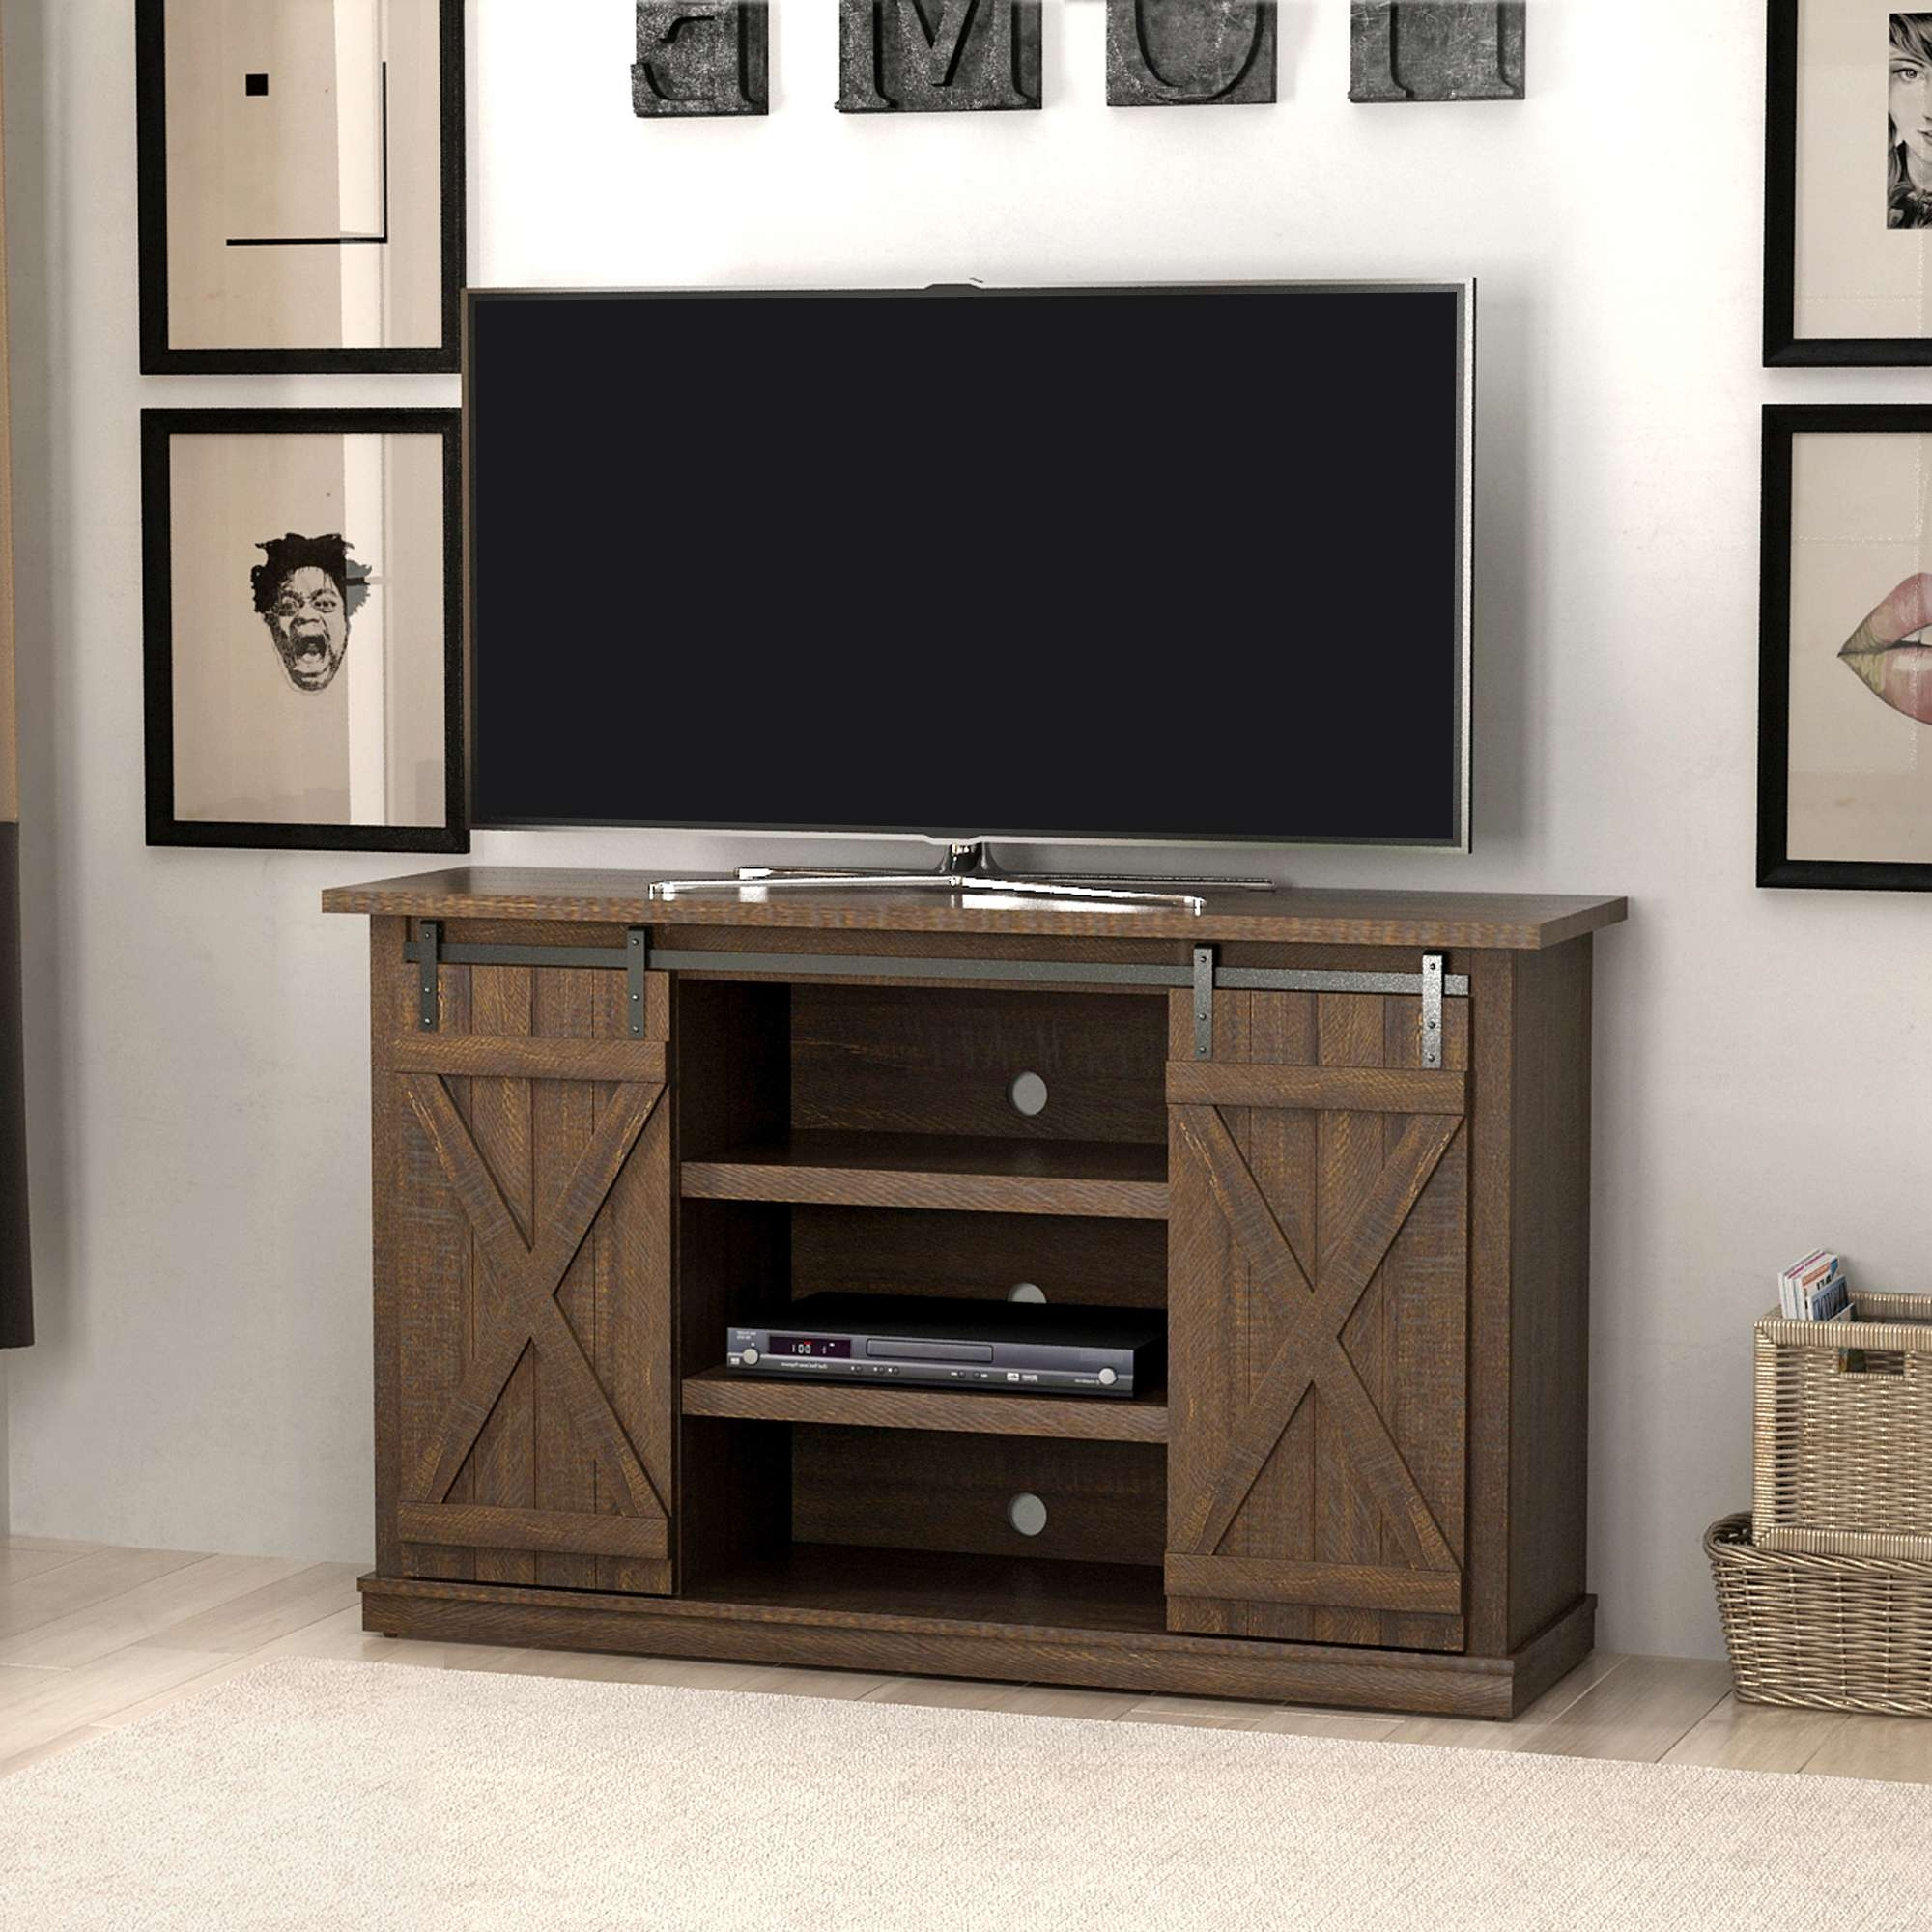 Tv Stands – Walmart In 24 Inch Led Tv Stands (View 8 of 15)